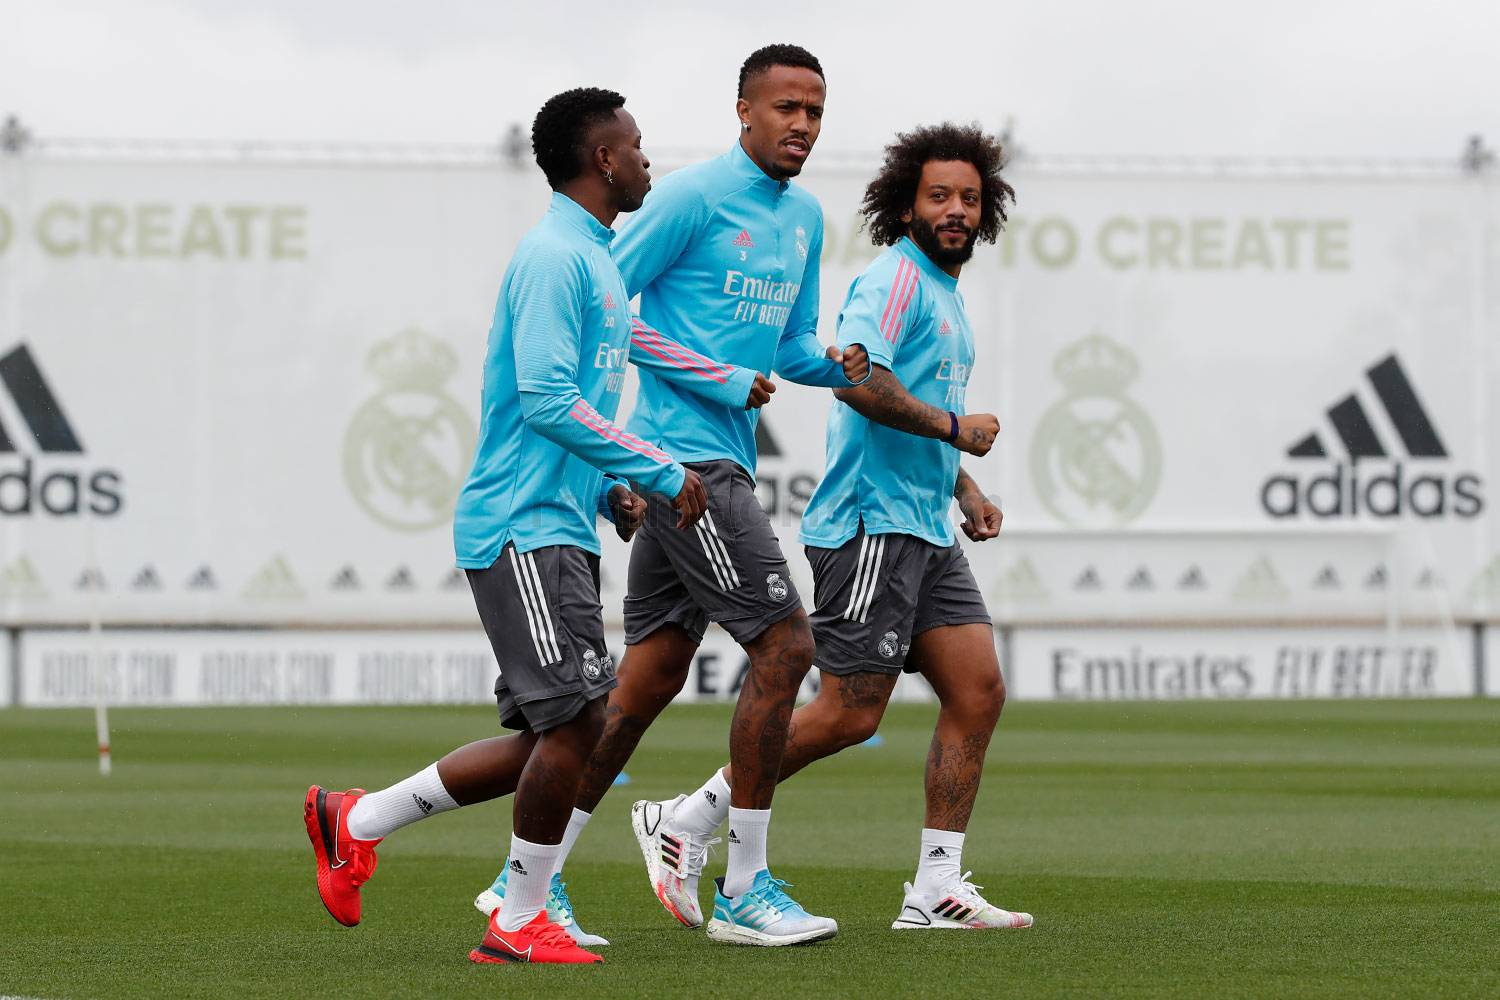 Entrenamiento del Real Madrid  - 11-05-2021